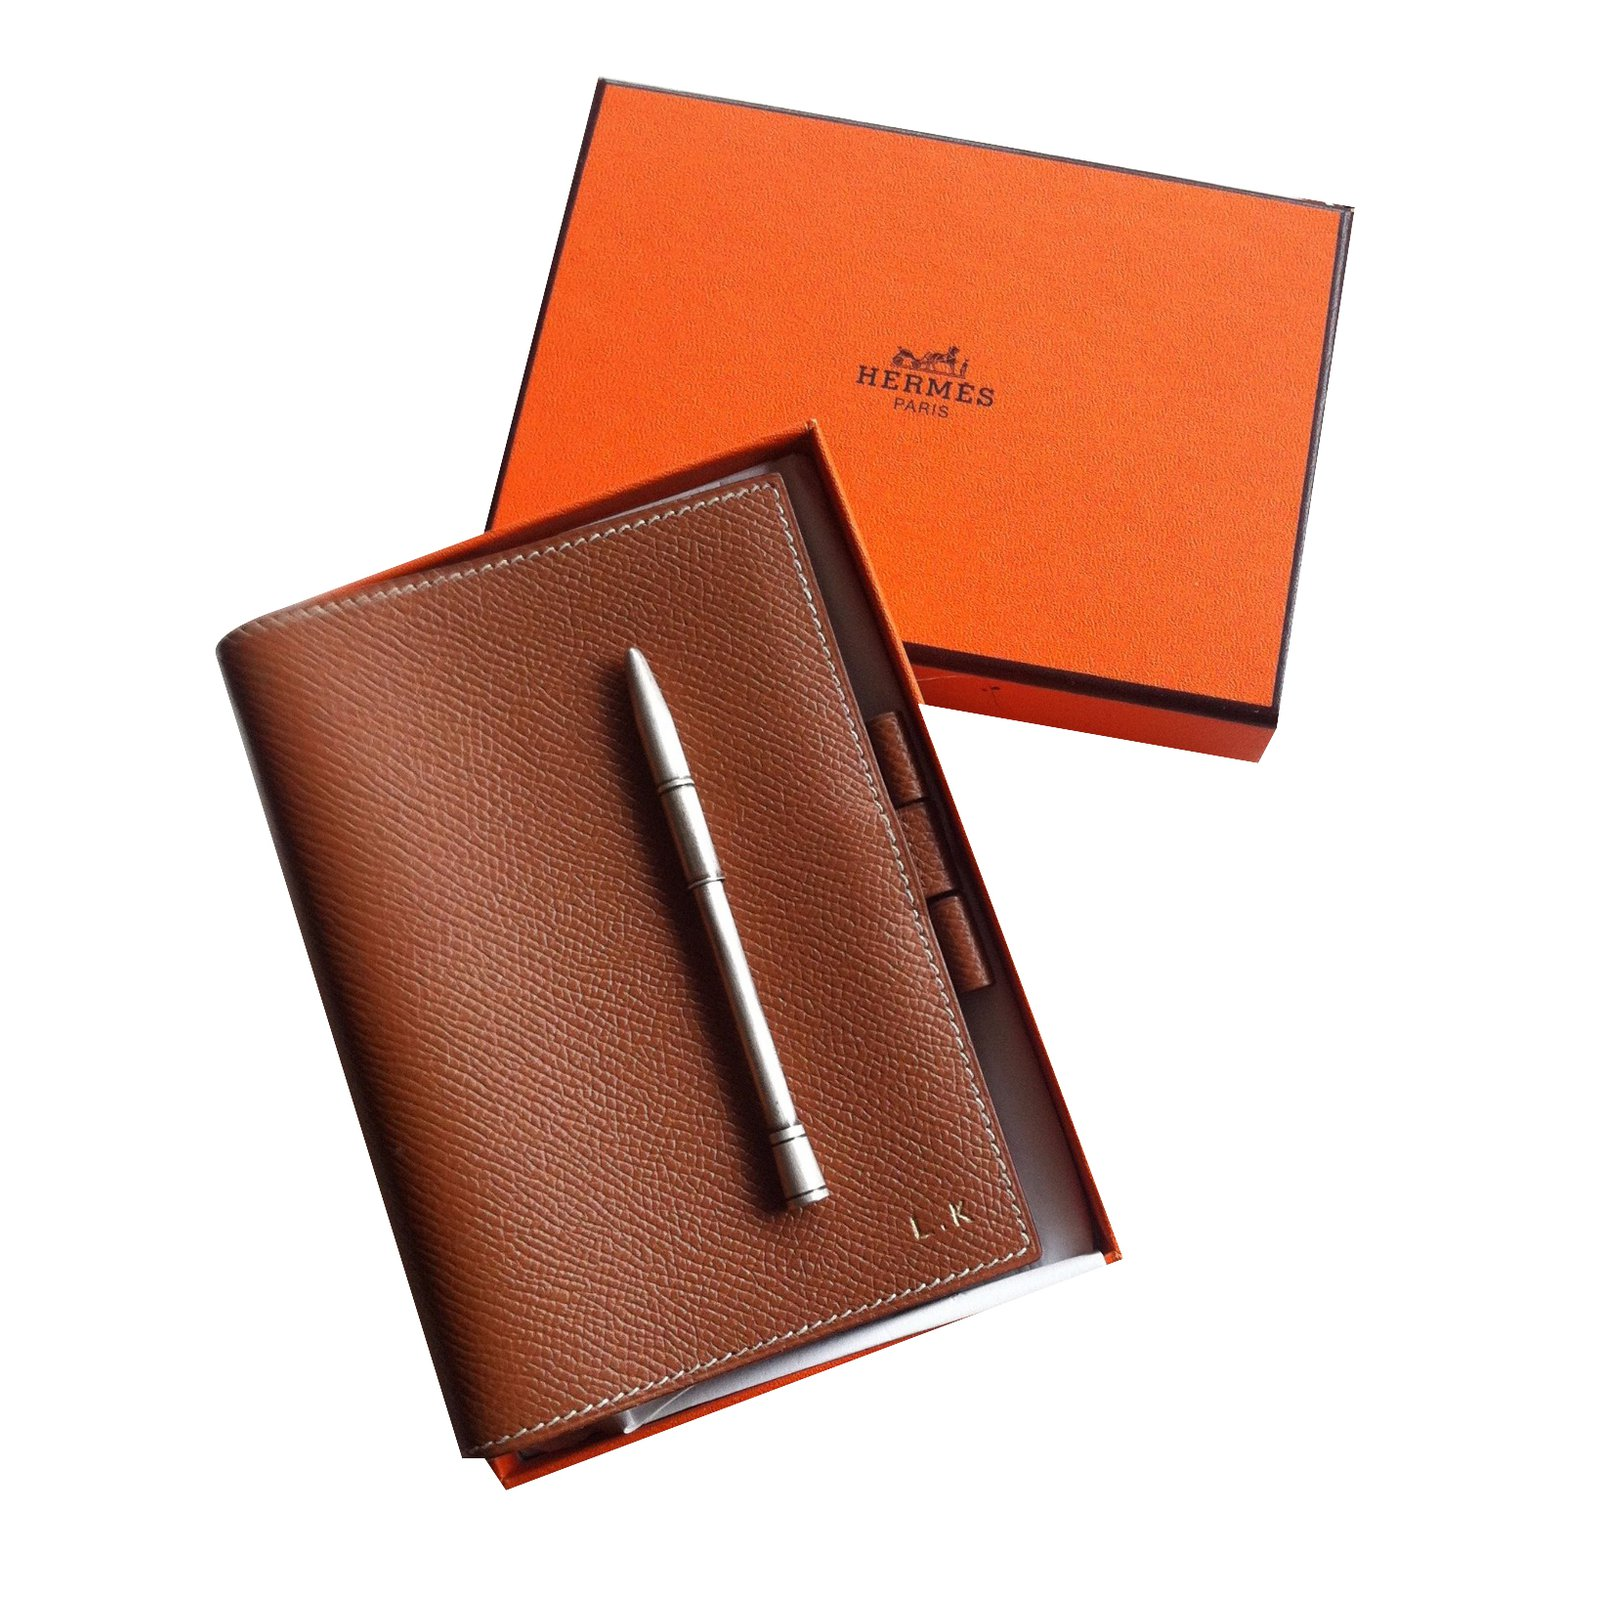 0f596e4282f Hermès Agenda cover Purses, wallets, cases Leather Caramel ref.30029 ...